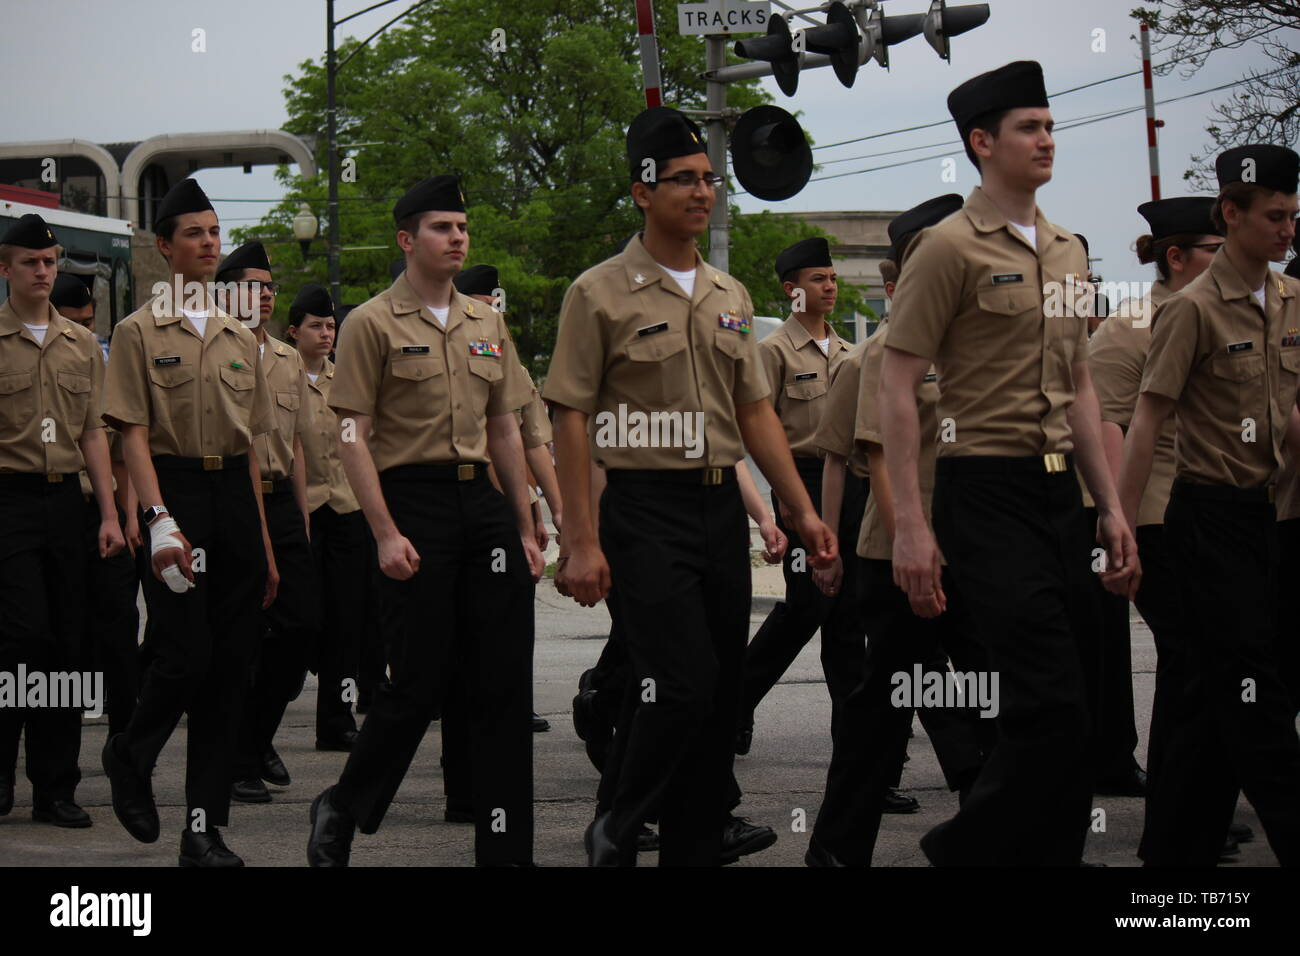 Chicago's Northwest side Memorial Day Parade. - Stock Image